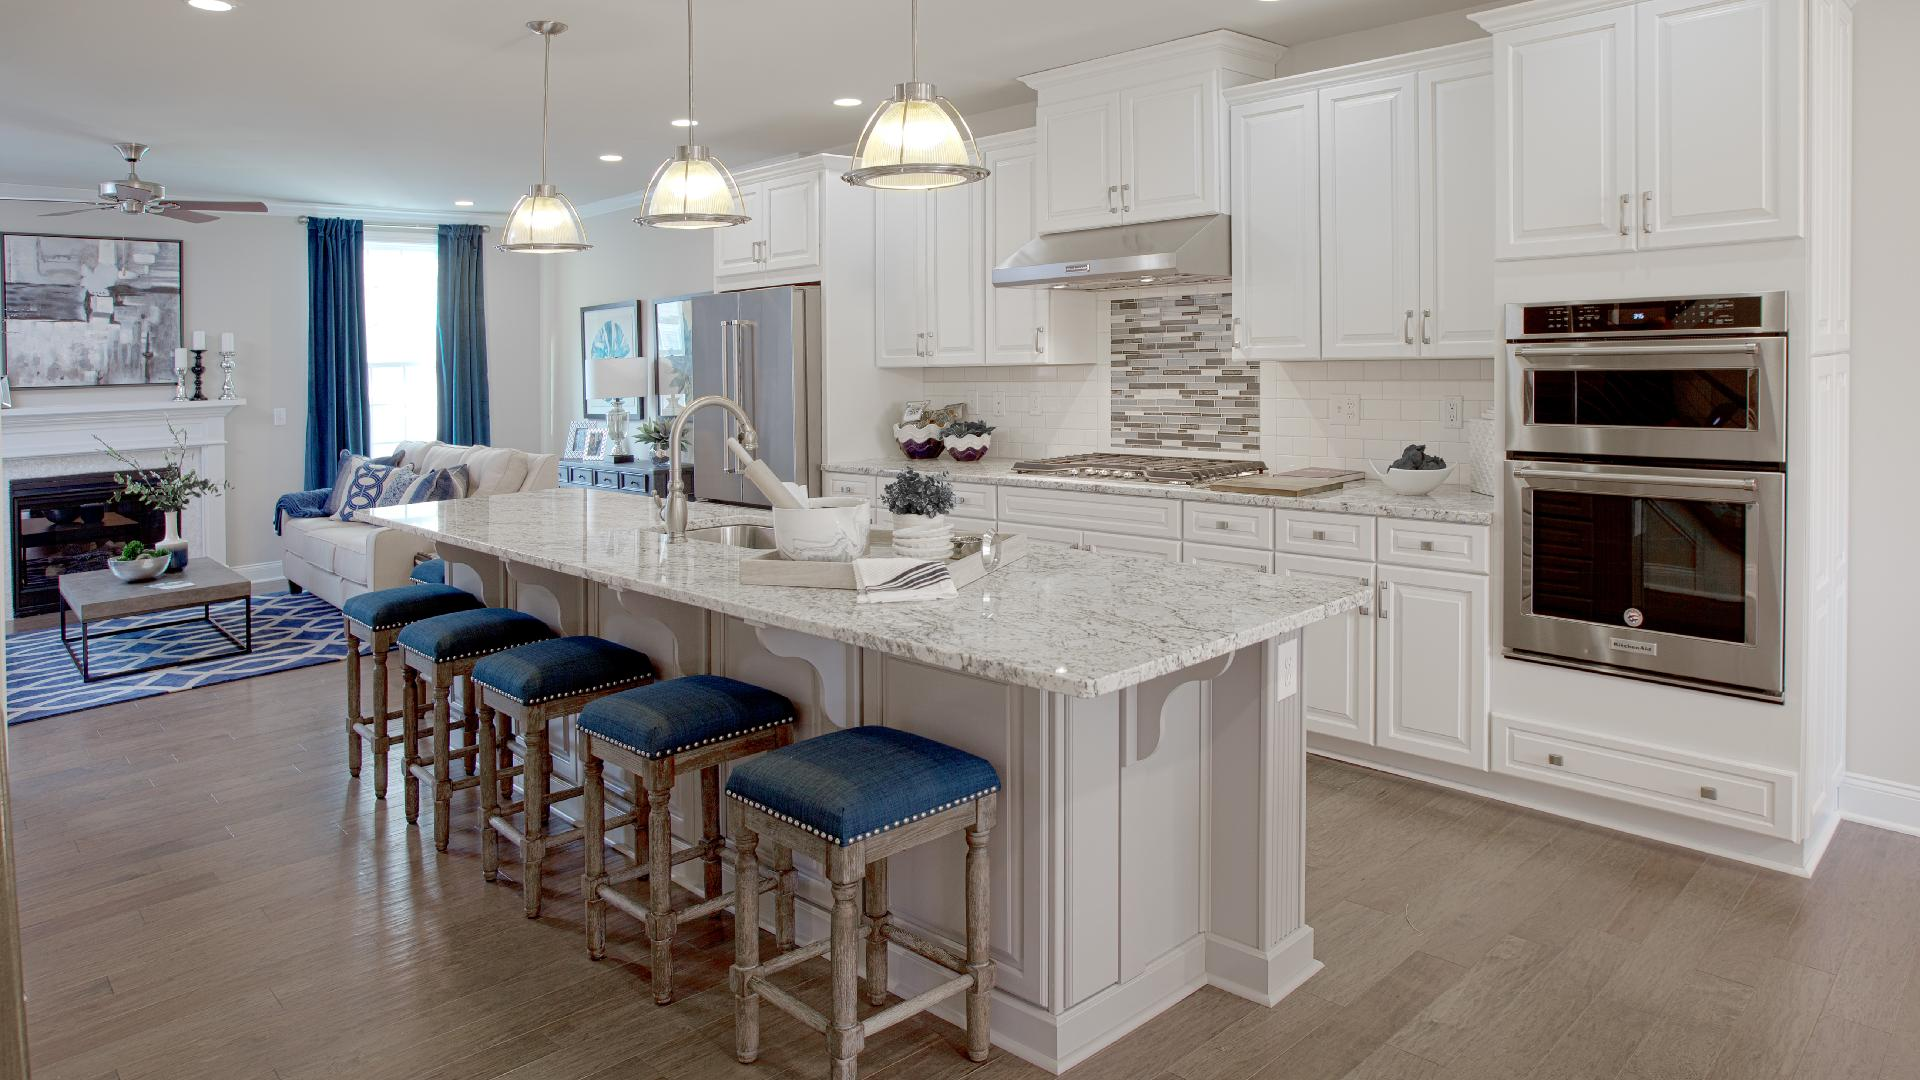 The stylish kitchen features name-brand appliances and granite countertops